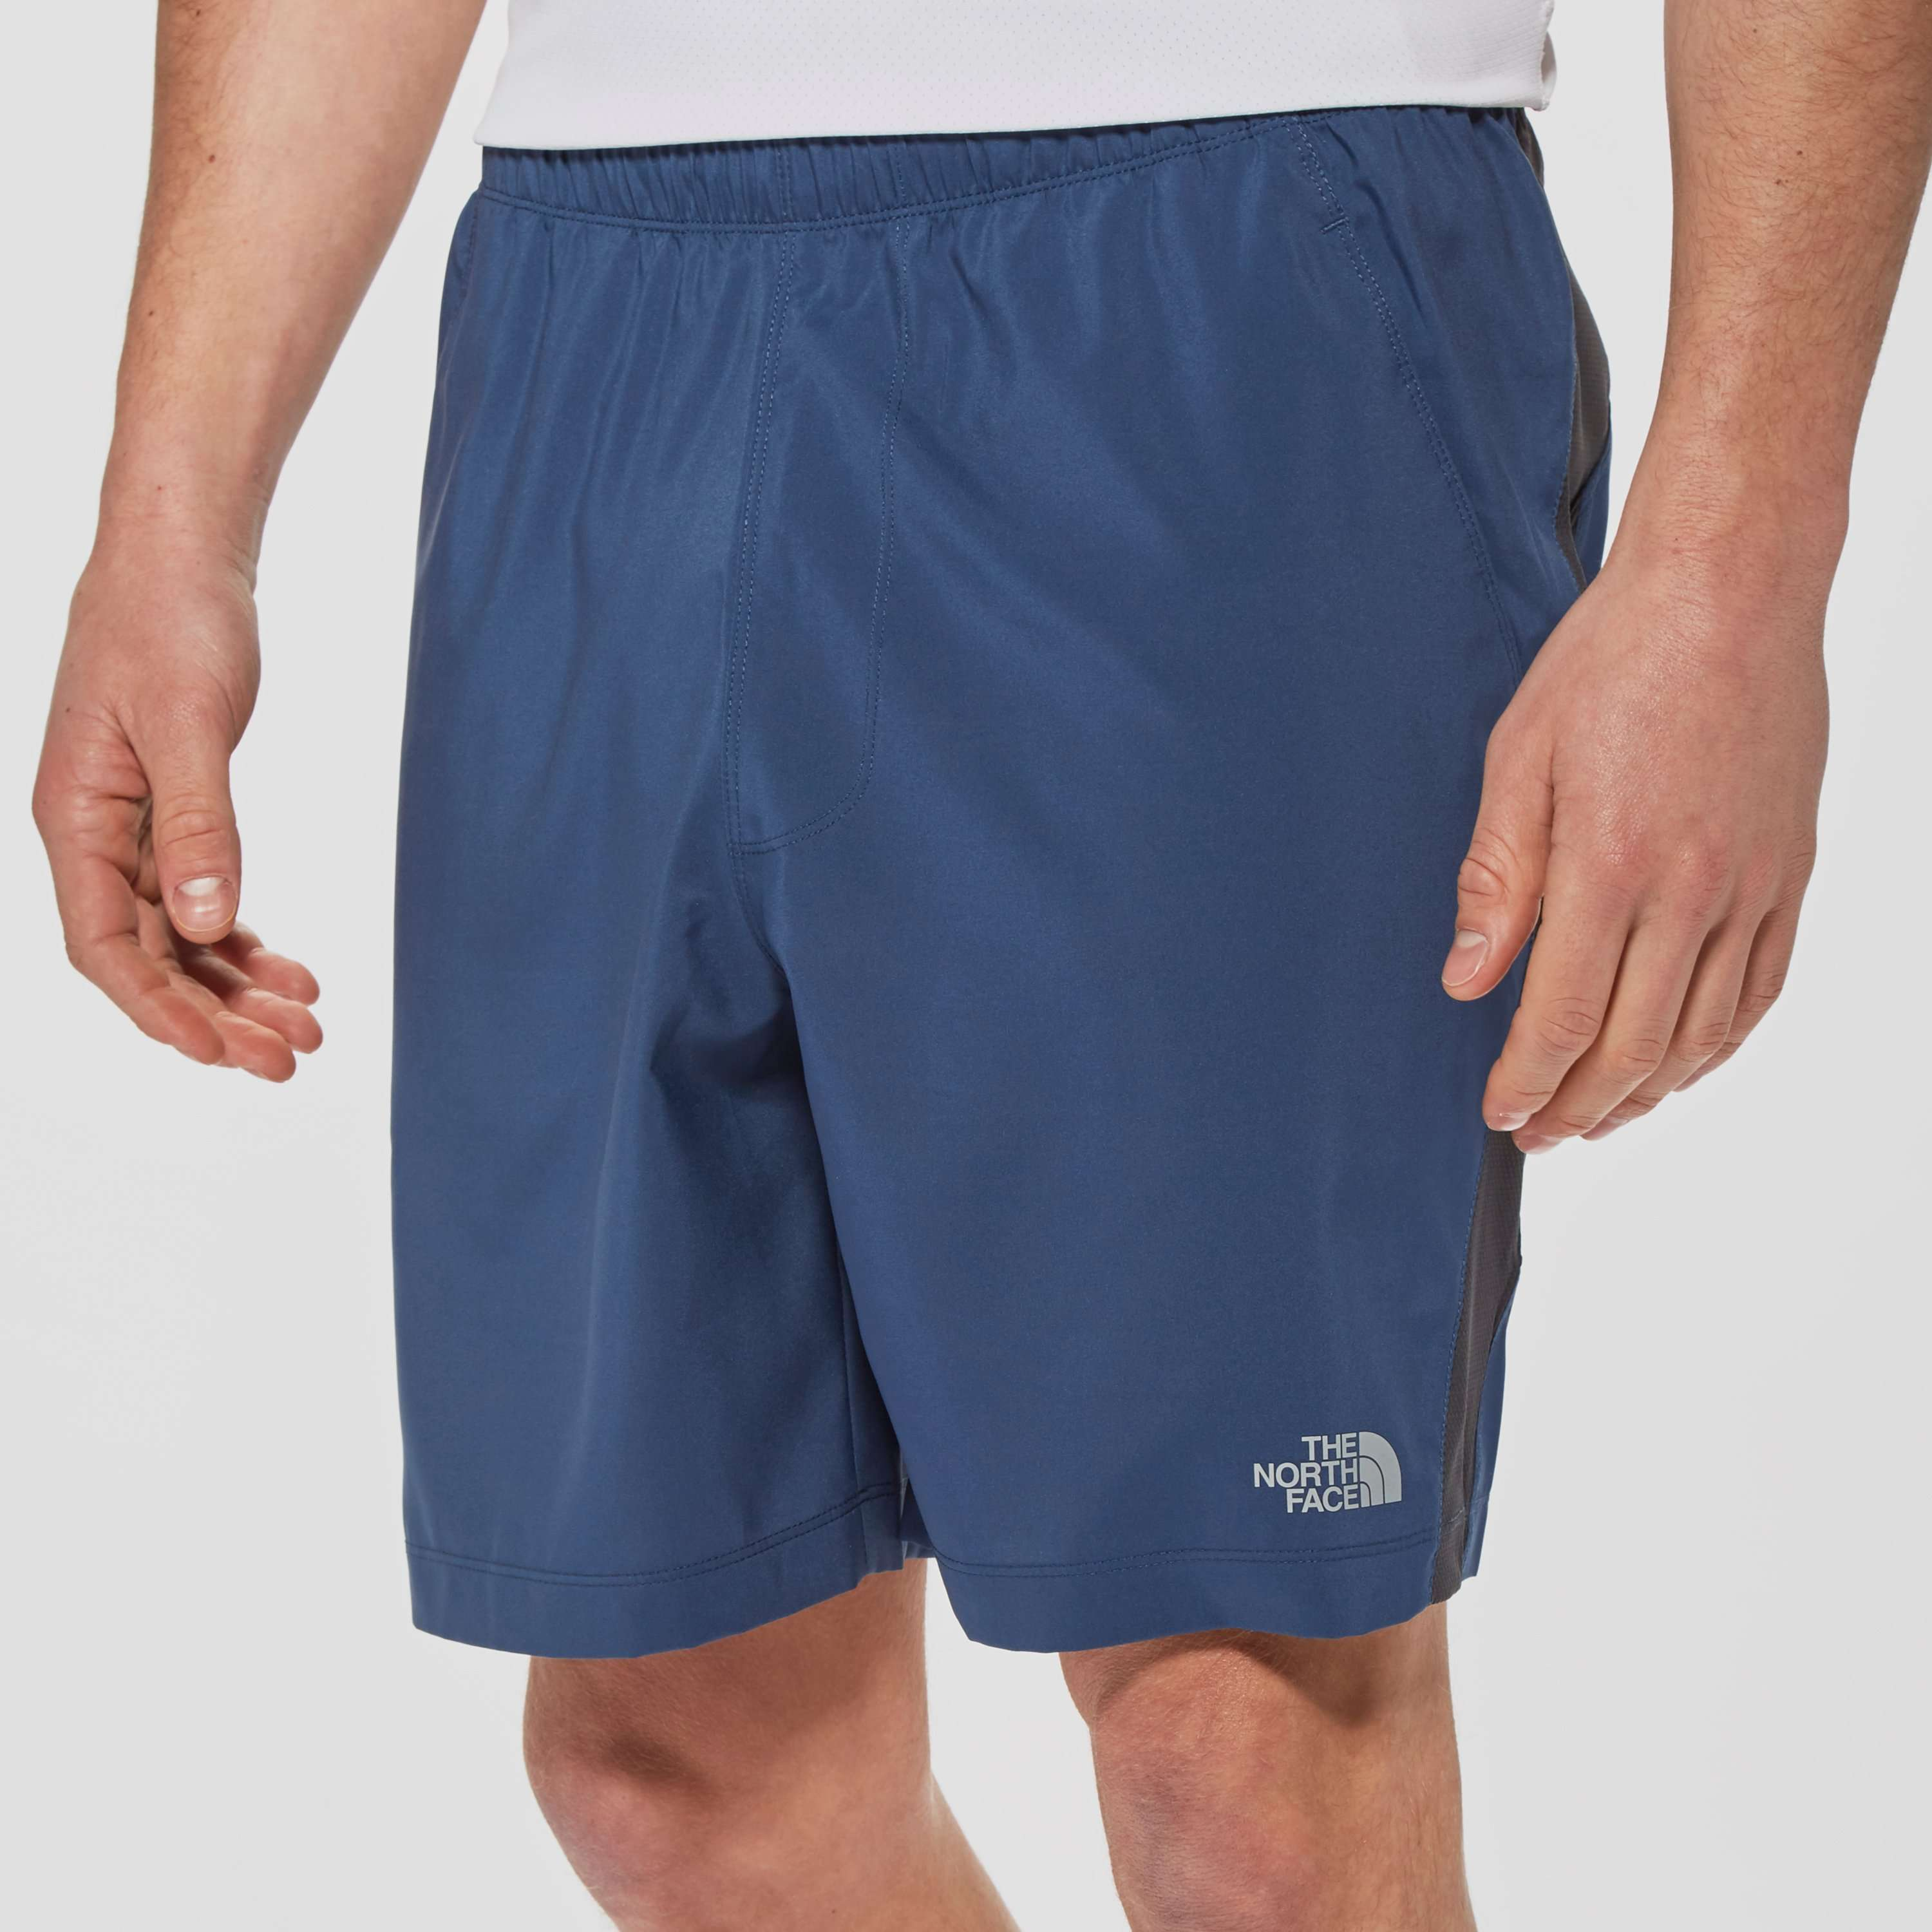 THE NORTH FACE Men's Mountain Athletics Reactor Shorts